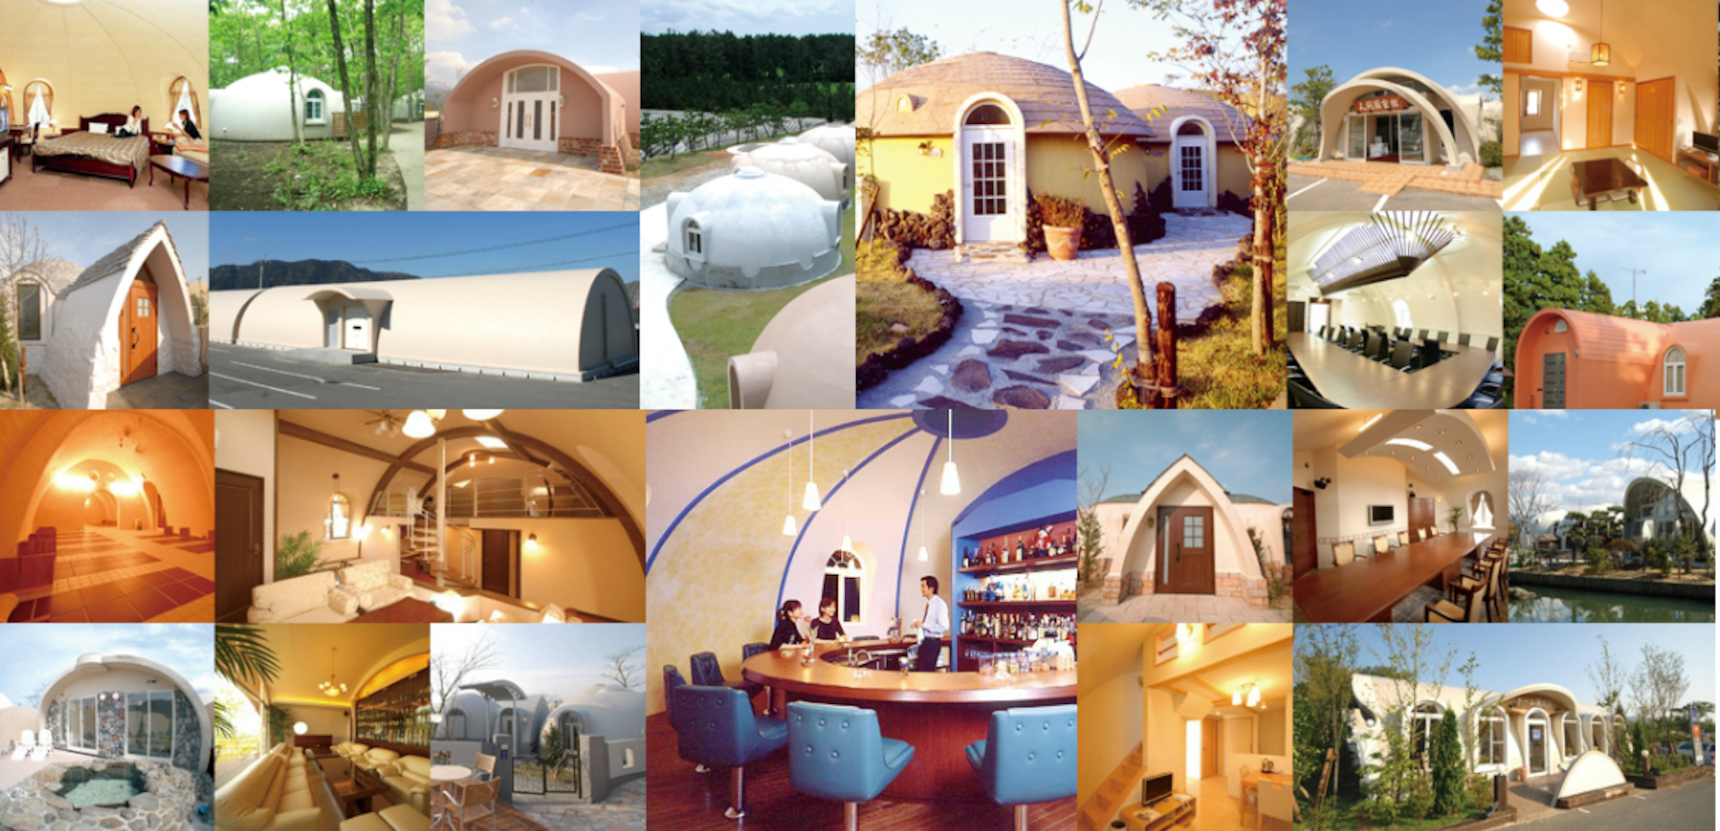 How About a Dome House?